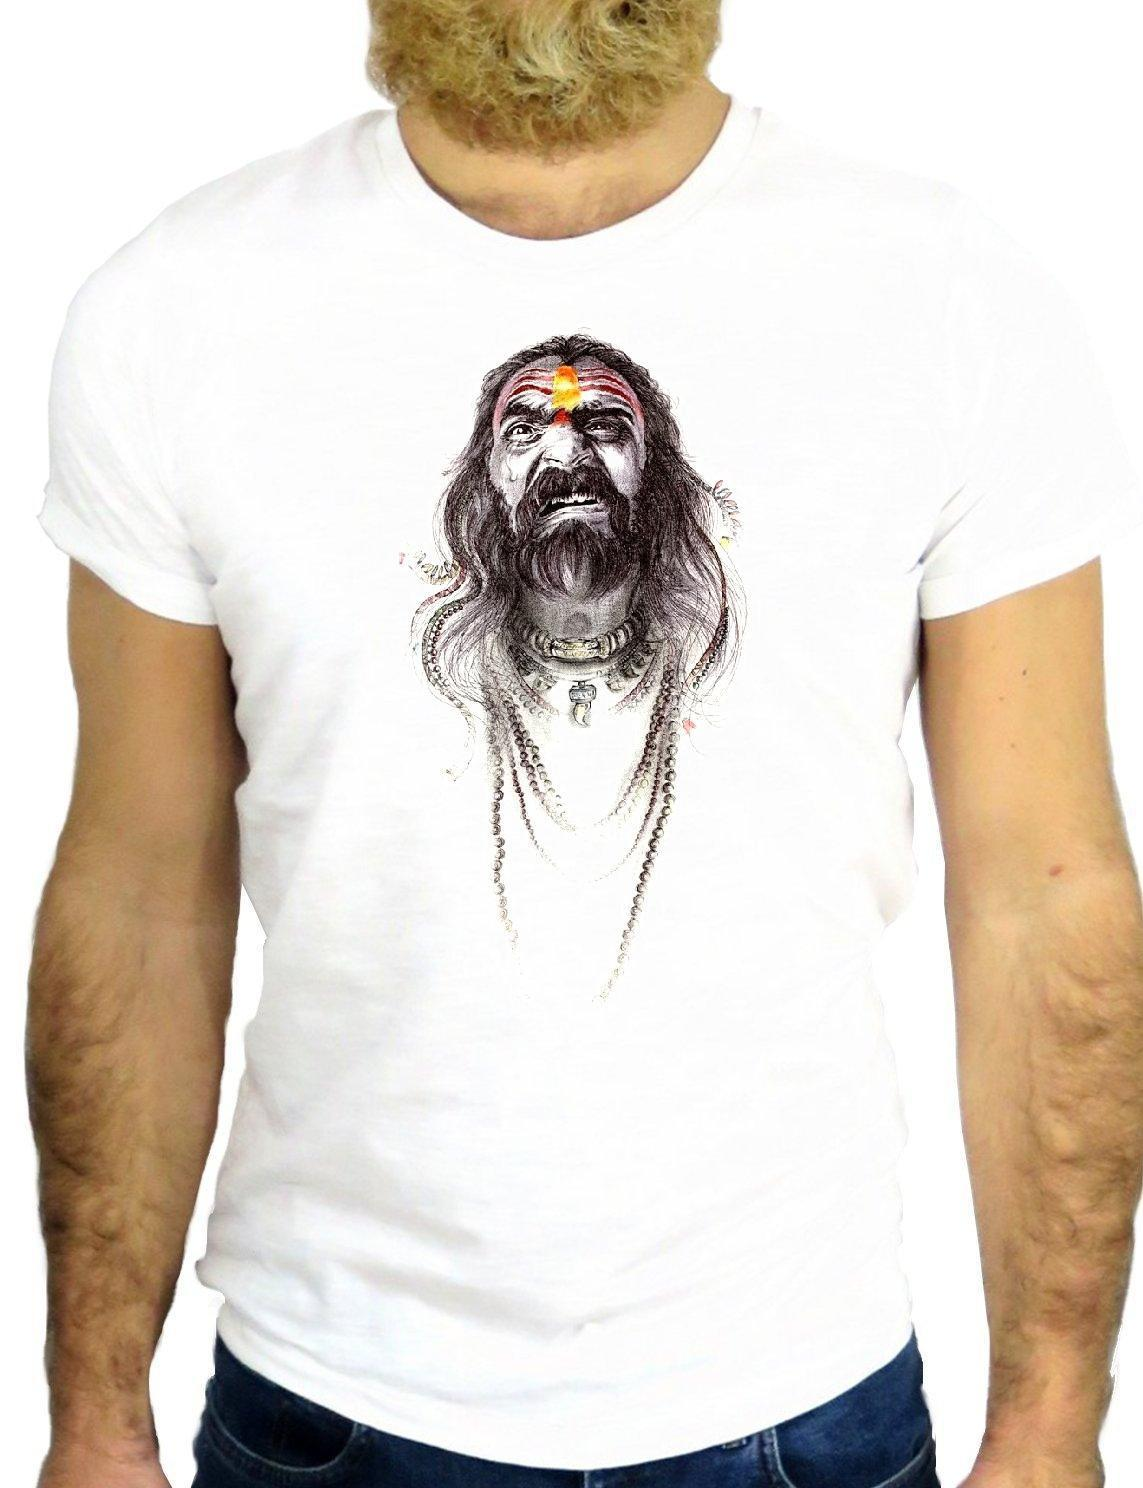 Best Selling Creative Design Vintage Apache Indian Adventure Cool Fashion Design t-shirts size S-3XL Free Shipping